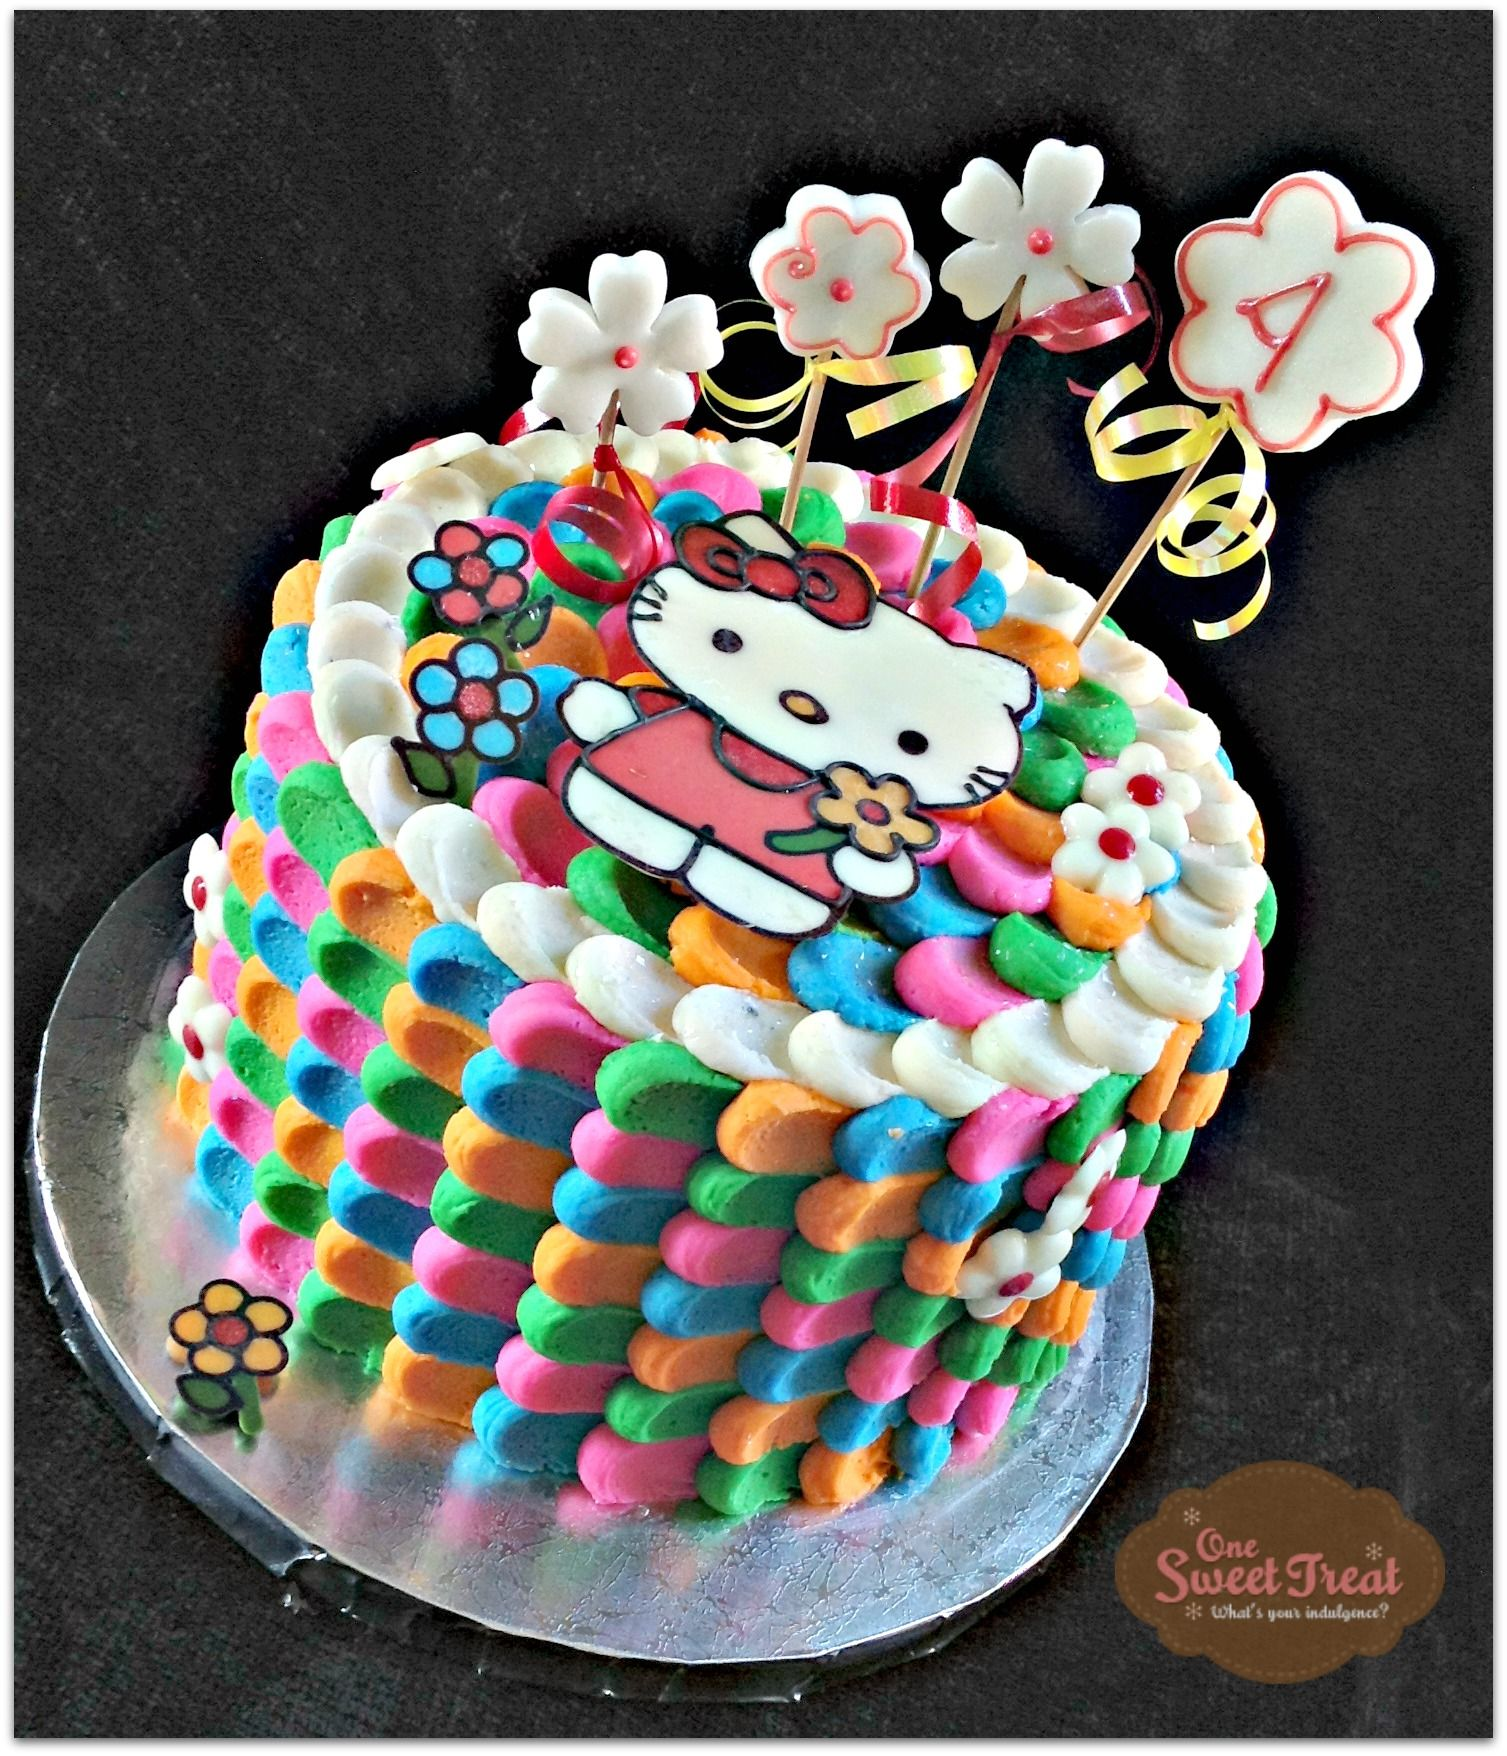 Hello Kitty Cake buttercream wwwOneSweetTreatcom One Sweet